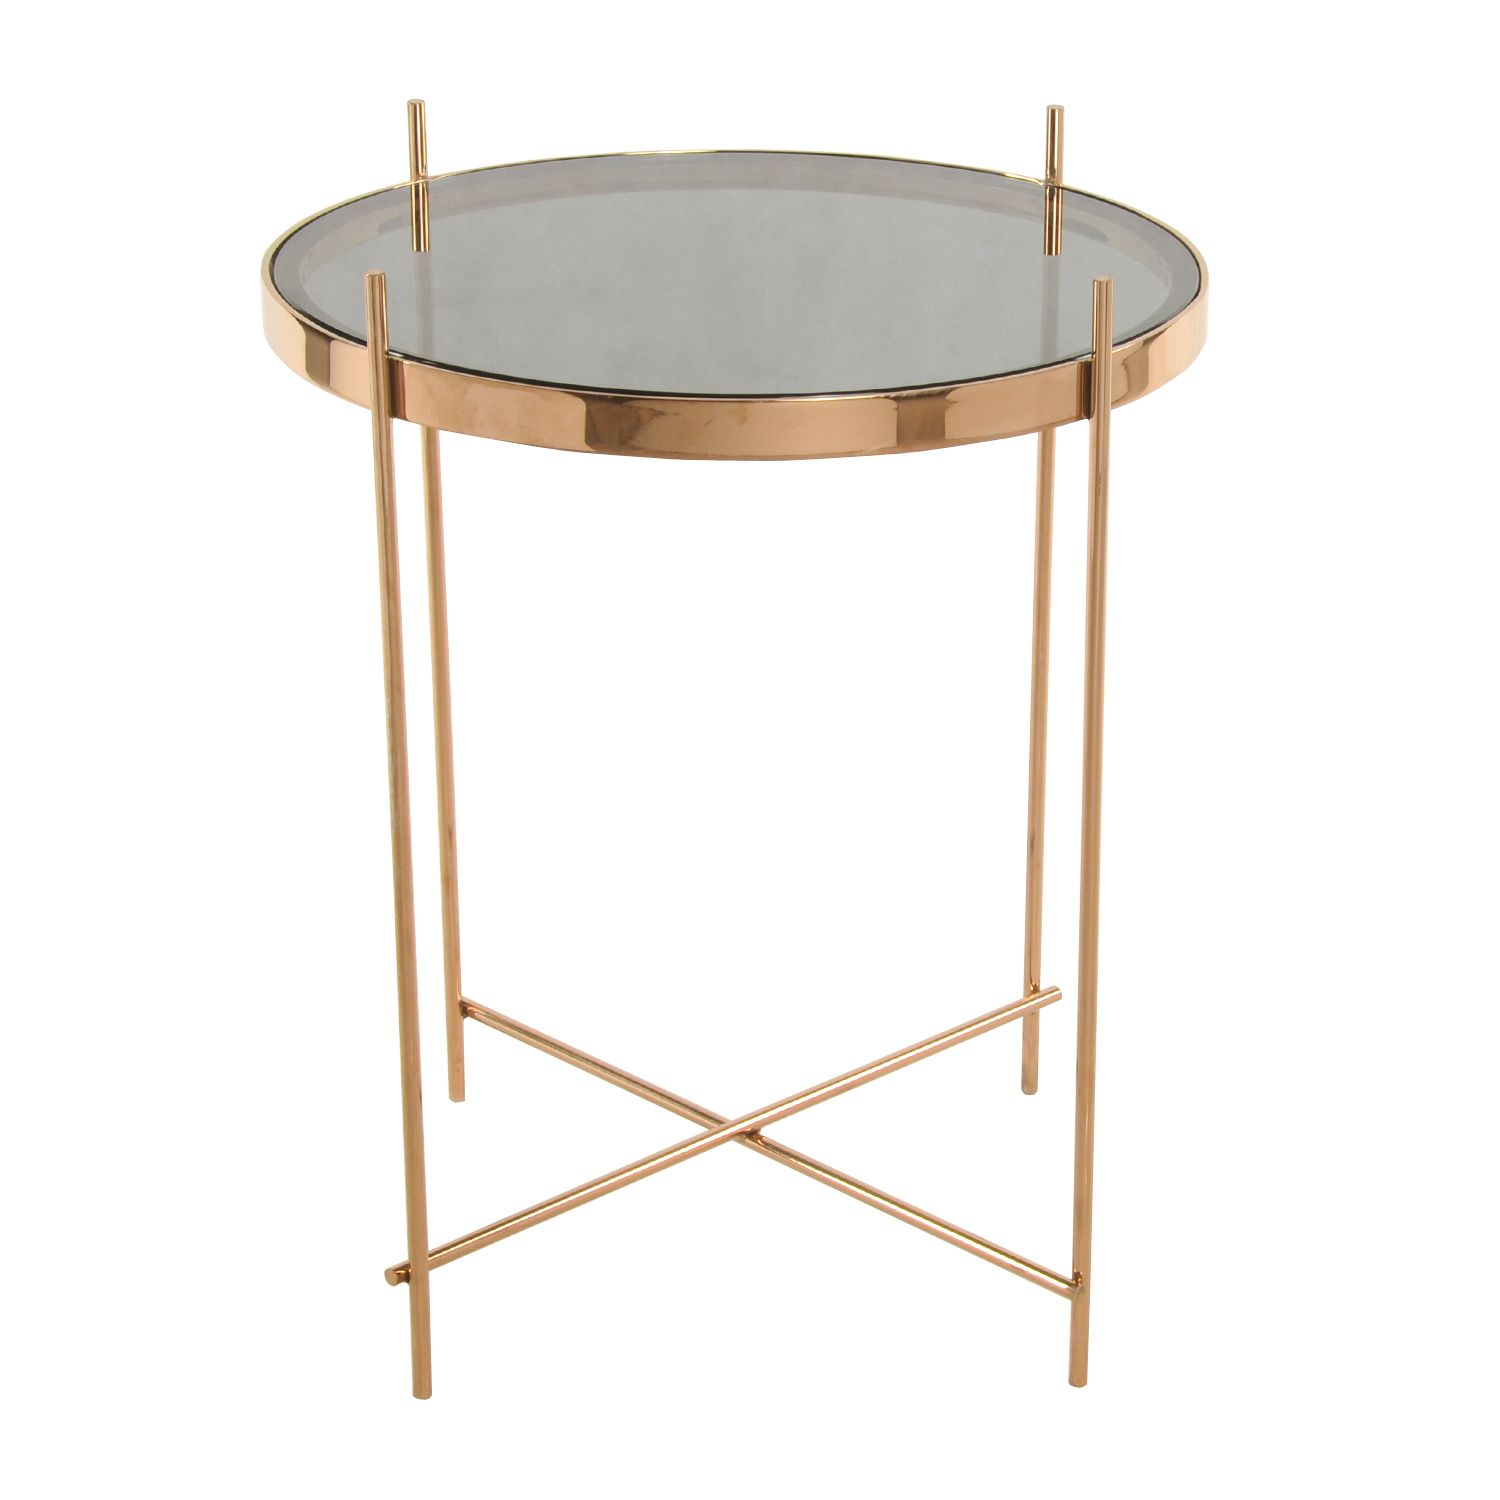 travan end table smoke glass top rose gold quick accent mirror side brass nest tables bunnings patio furniture wire target heavy duty umbrella stand corner lamps contemporary